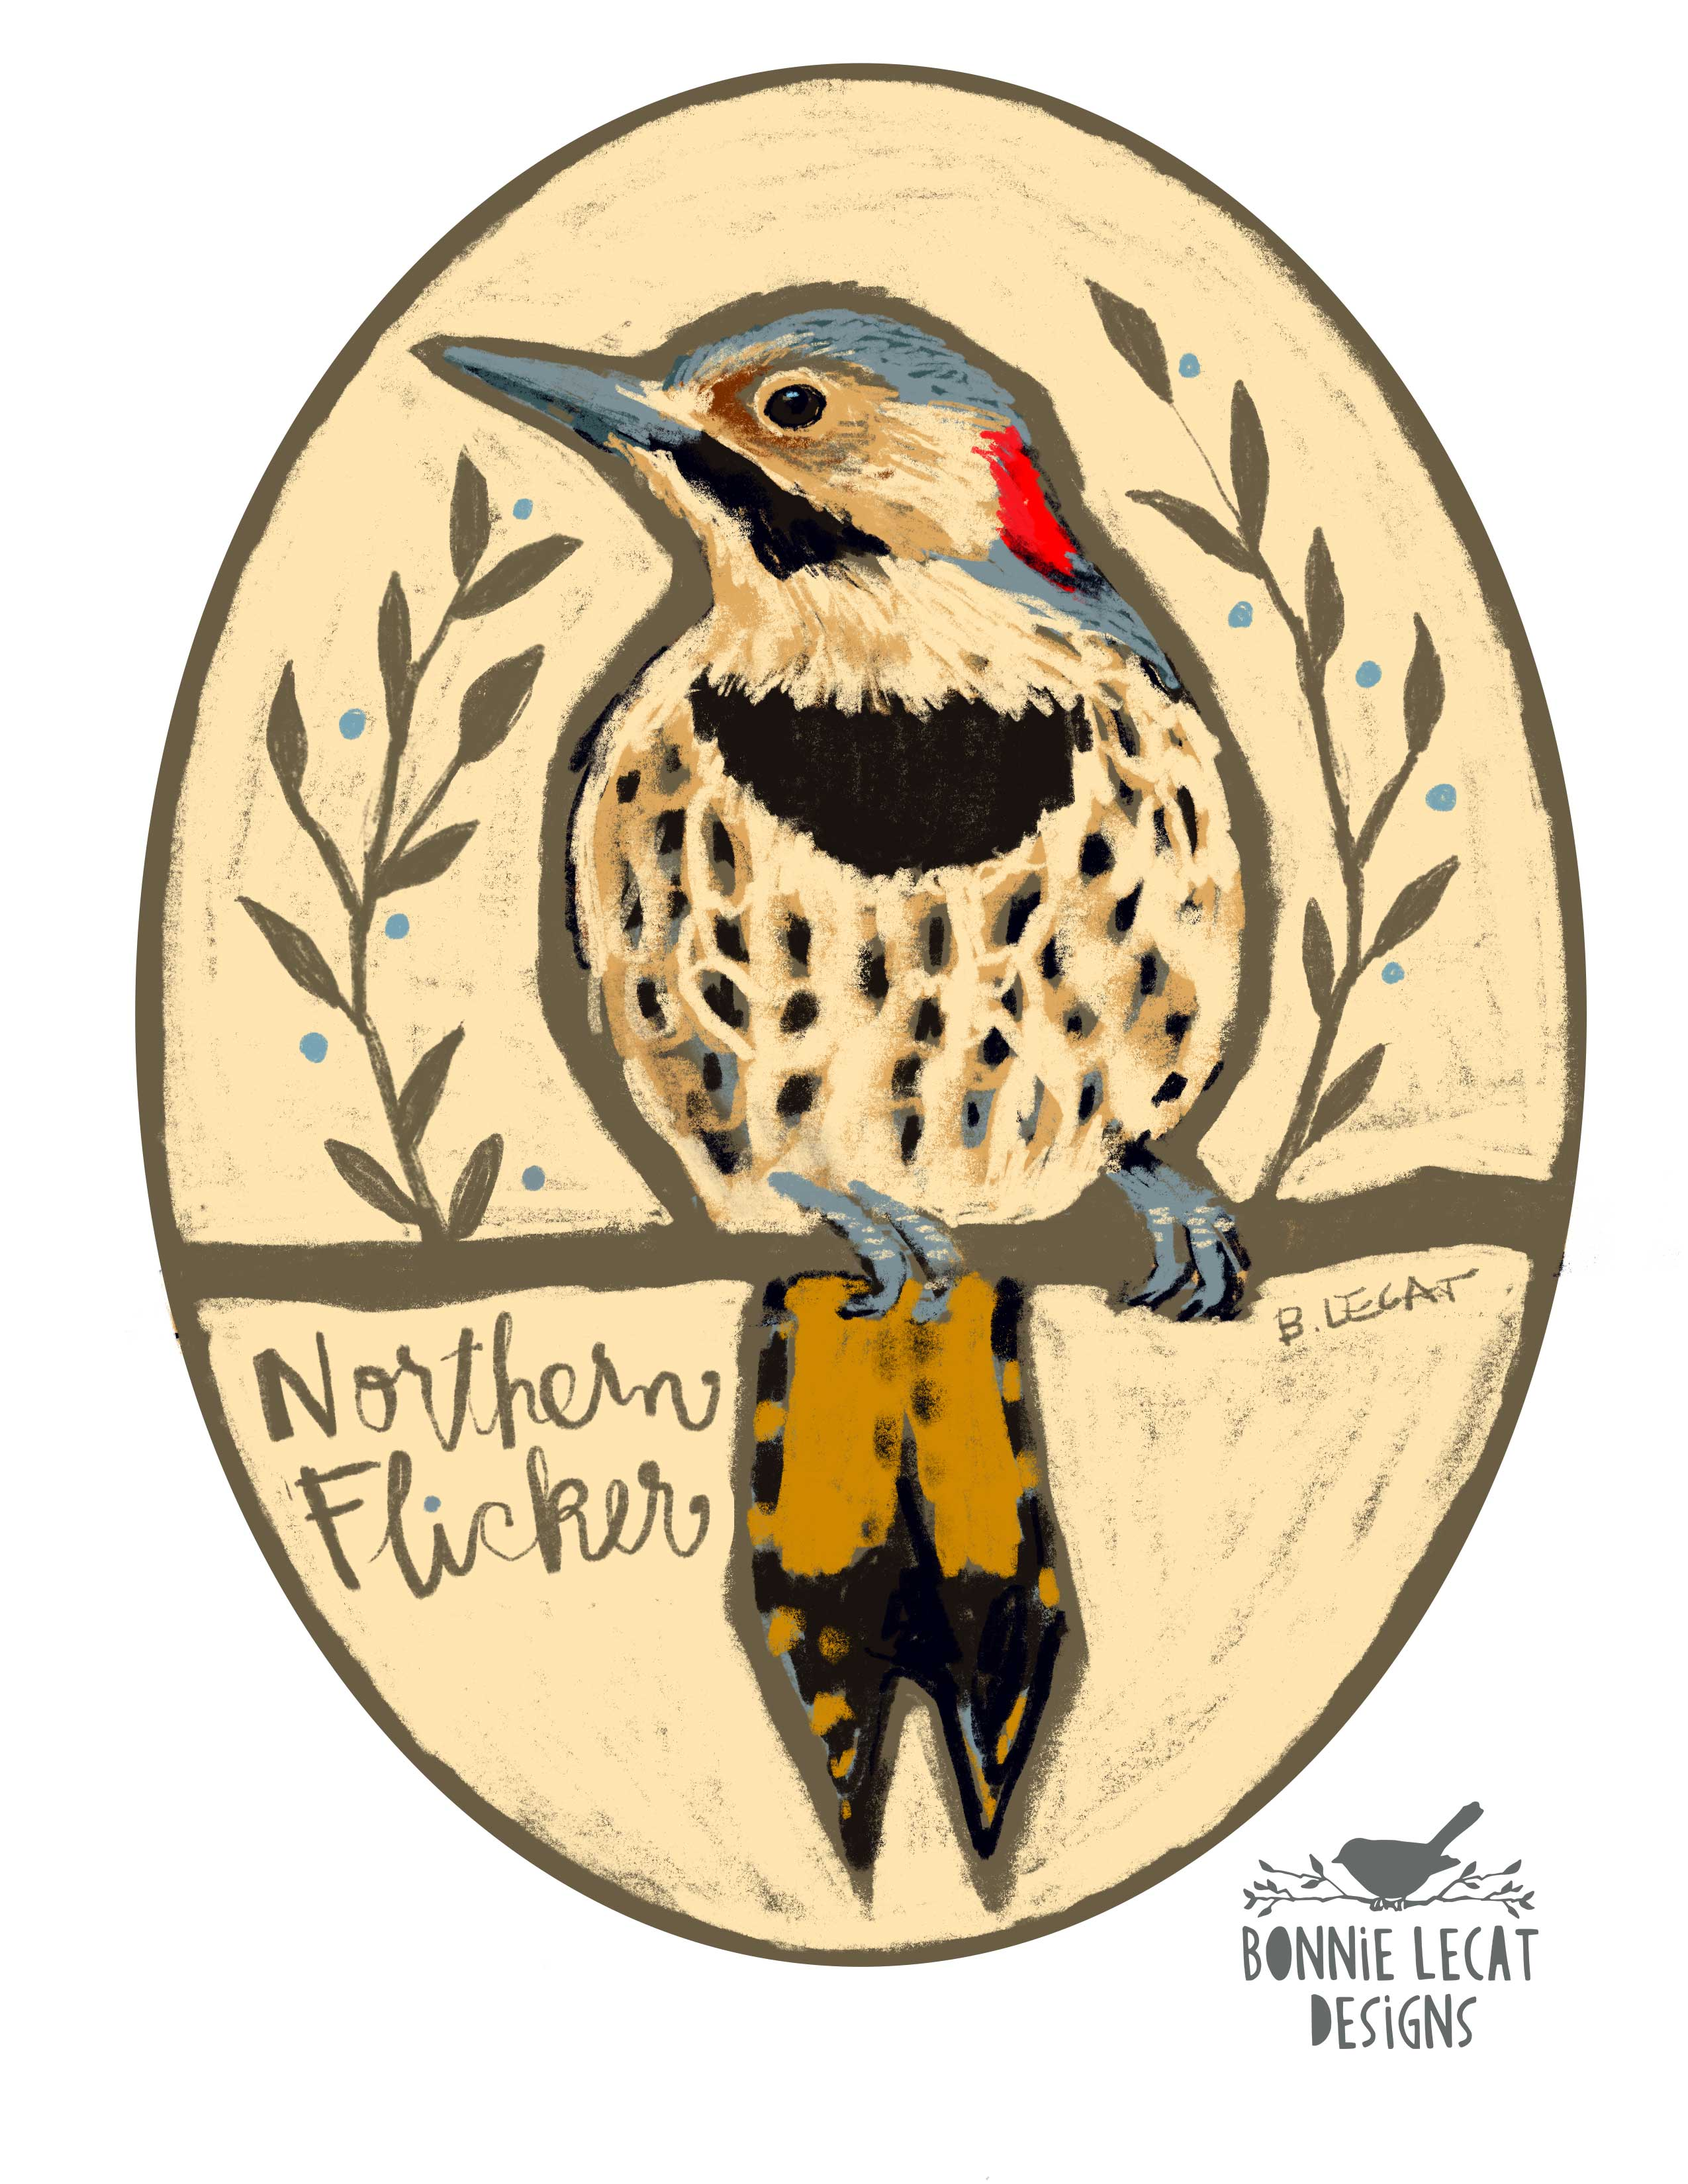 Northern Flicker illustration by Bonnie Lecat